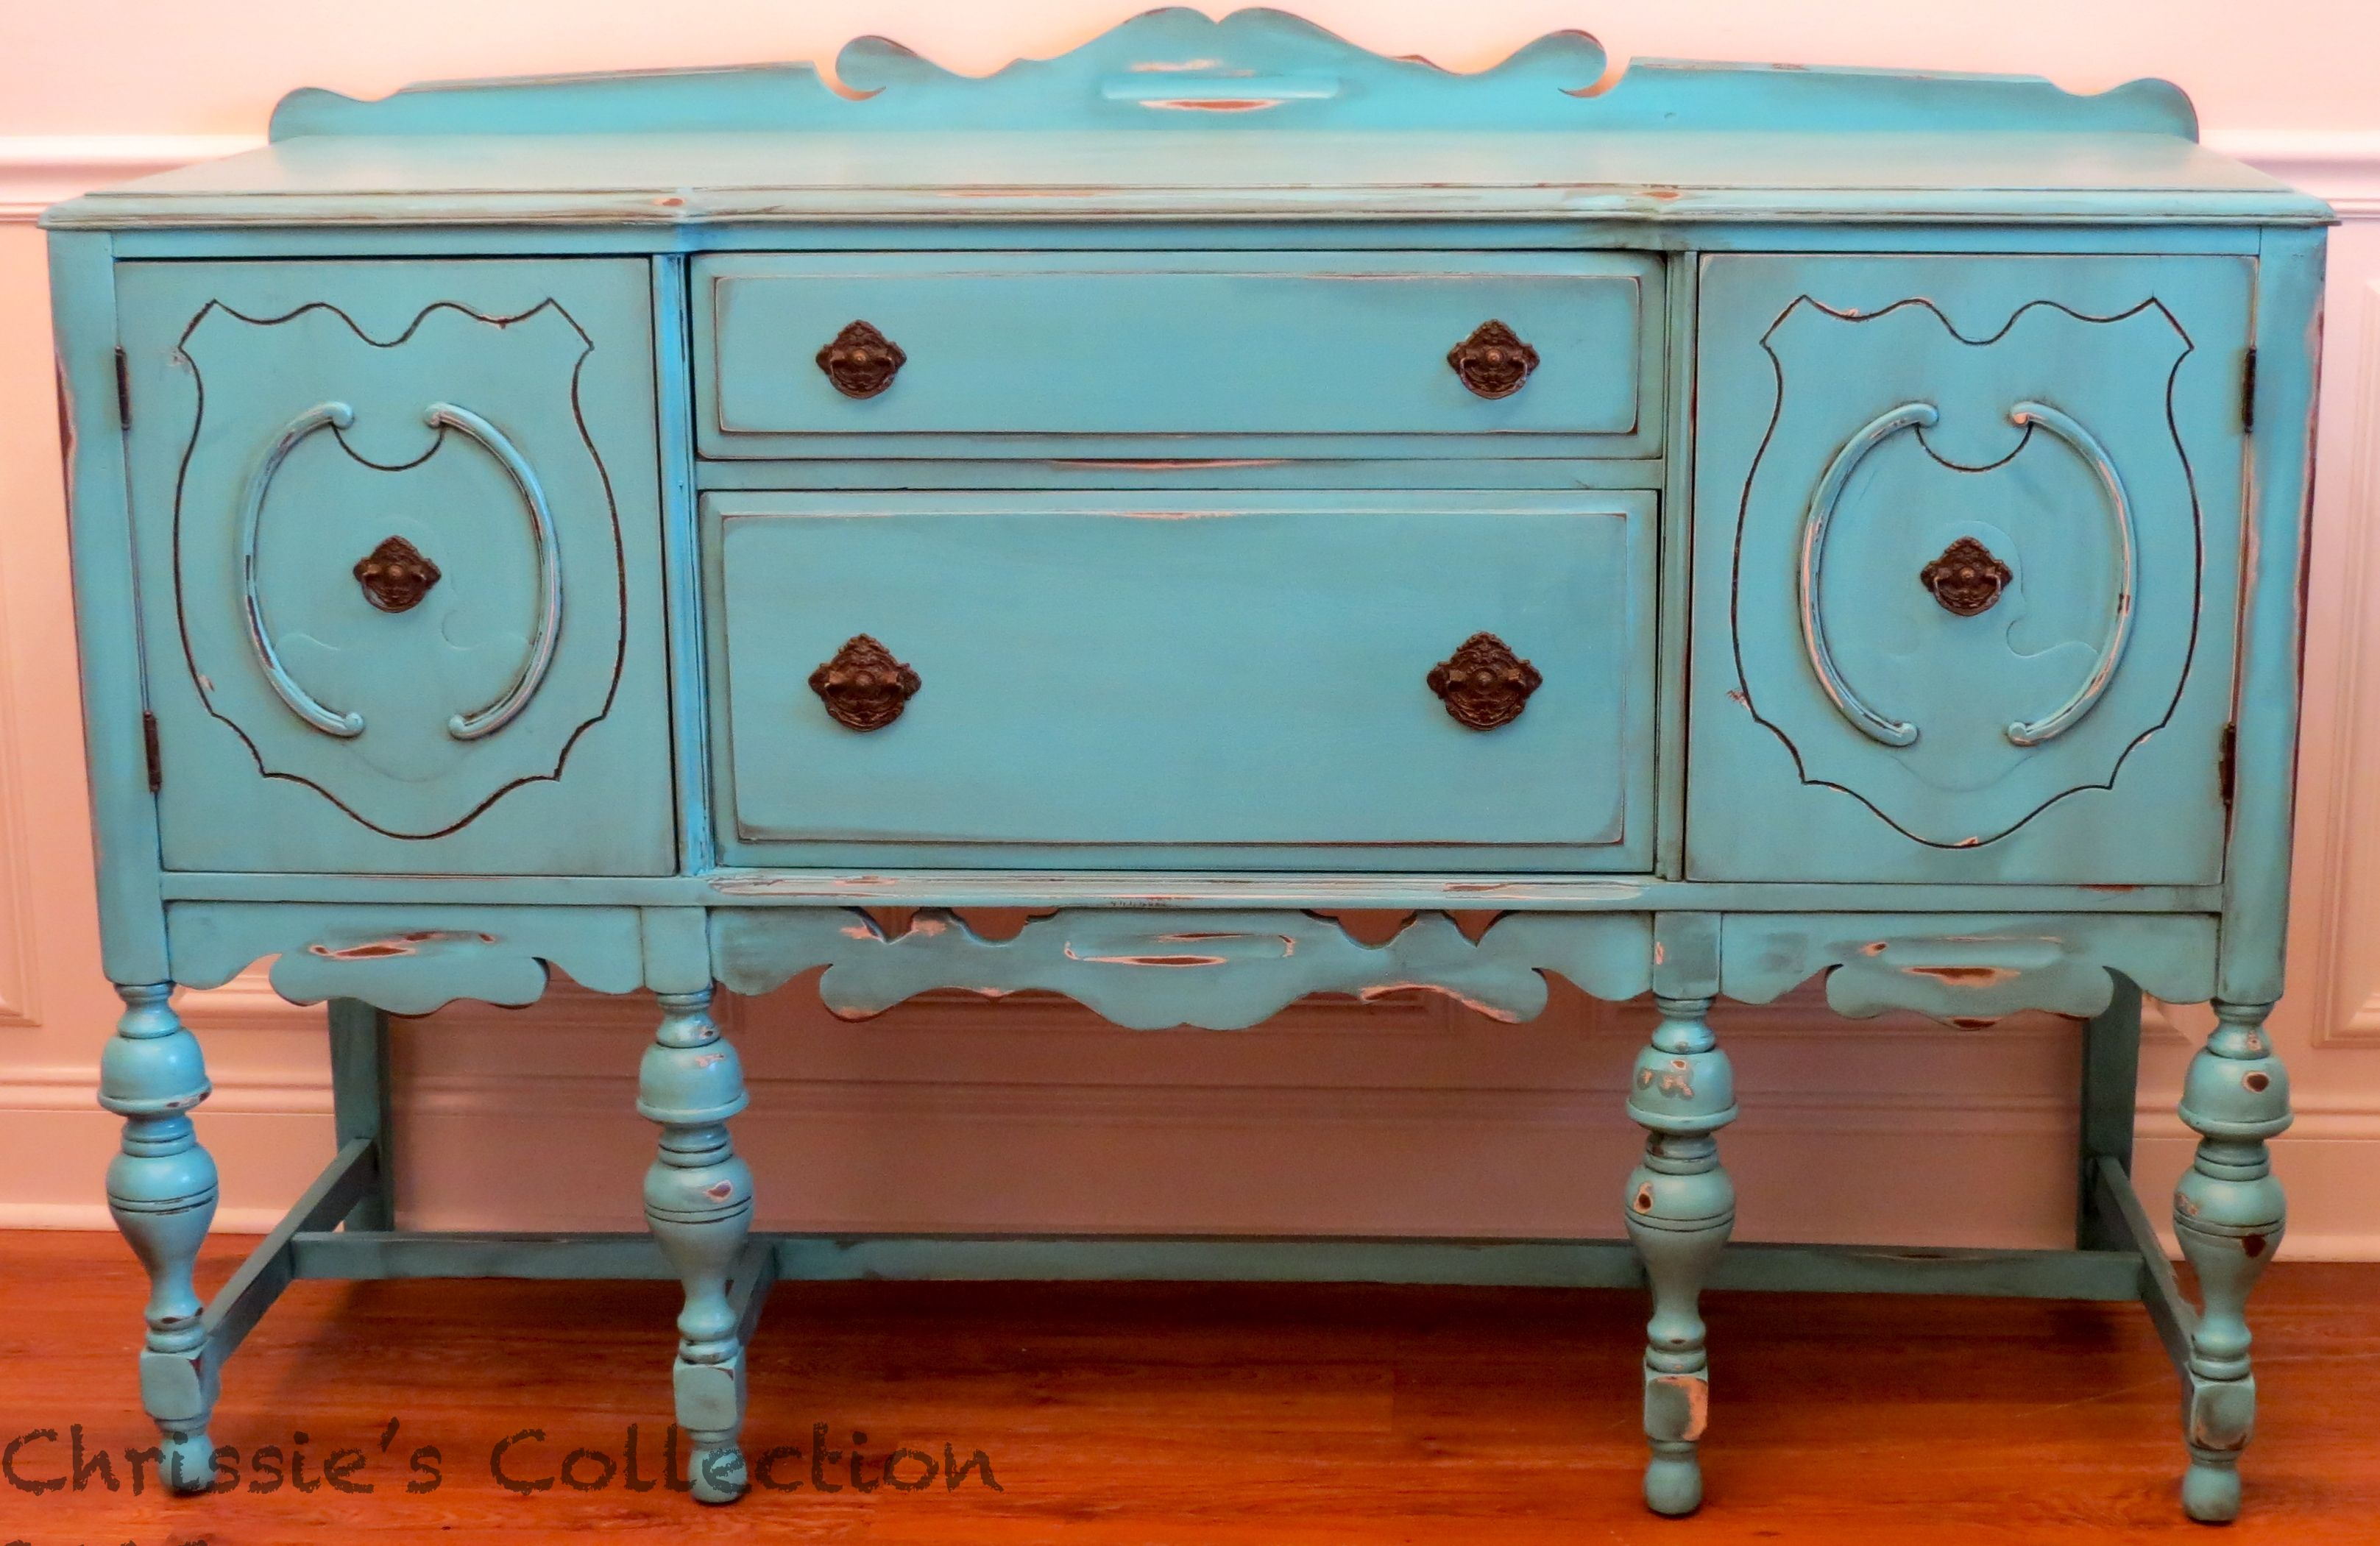 Distressed Turquoise buffet. Coming soon to The Plucky Peacock!